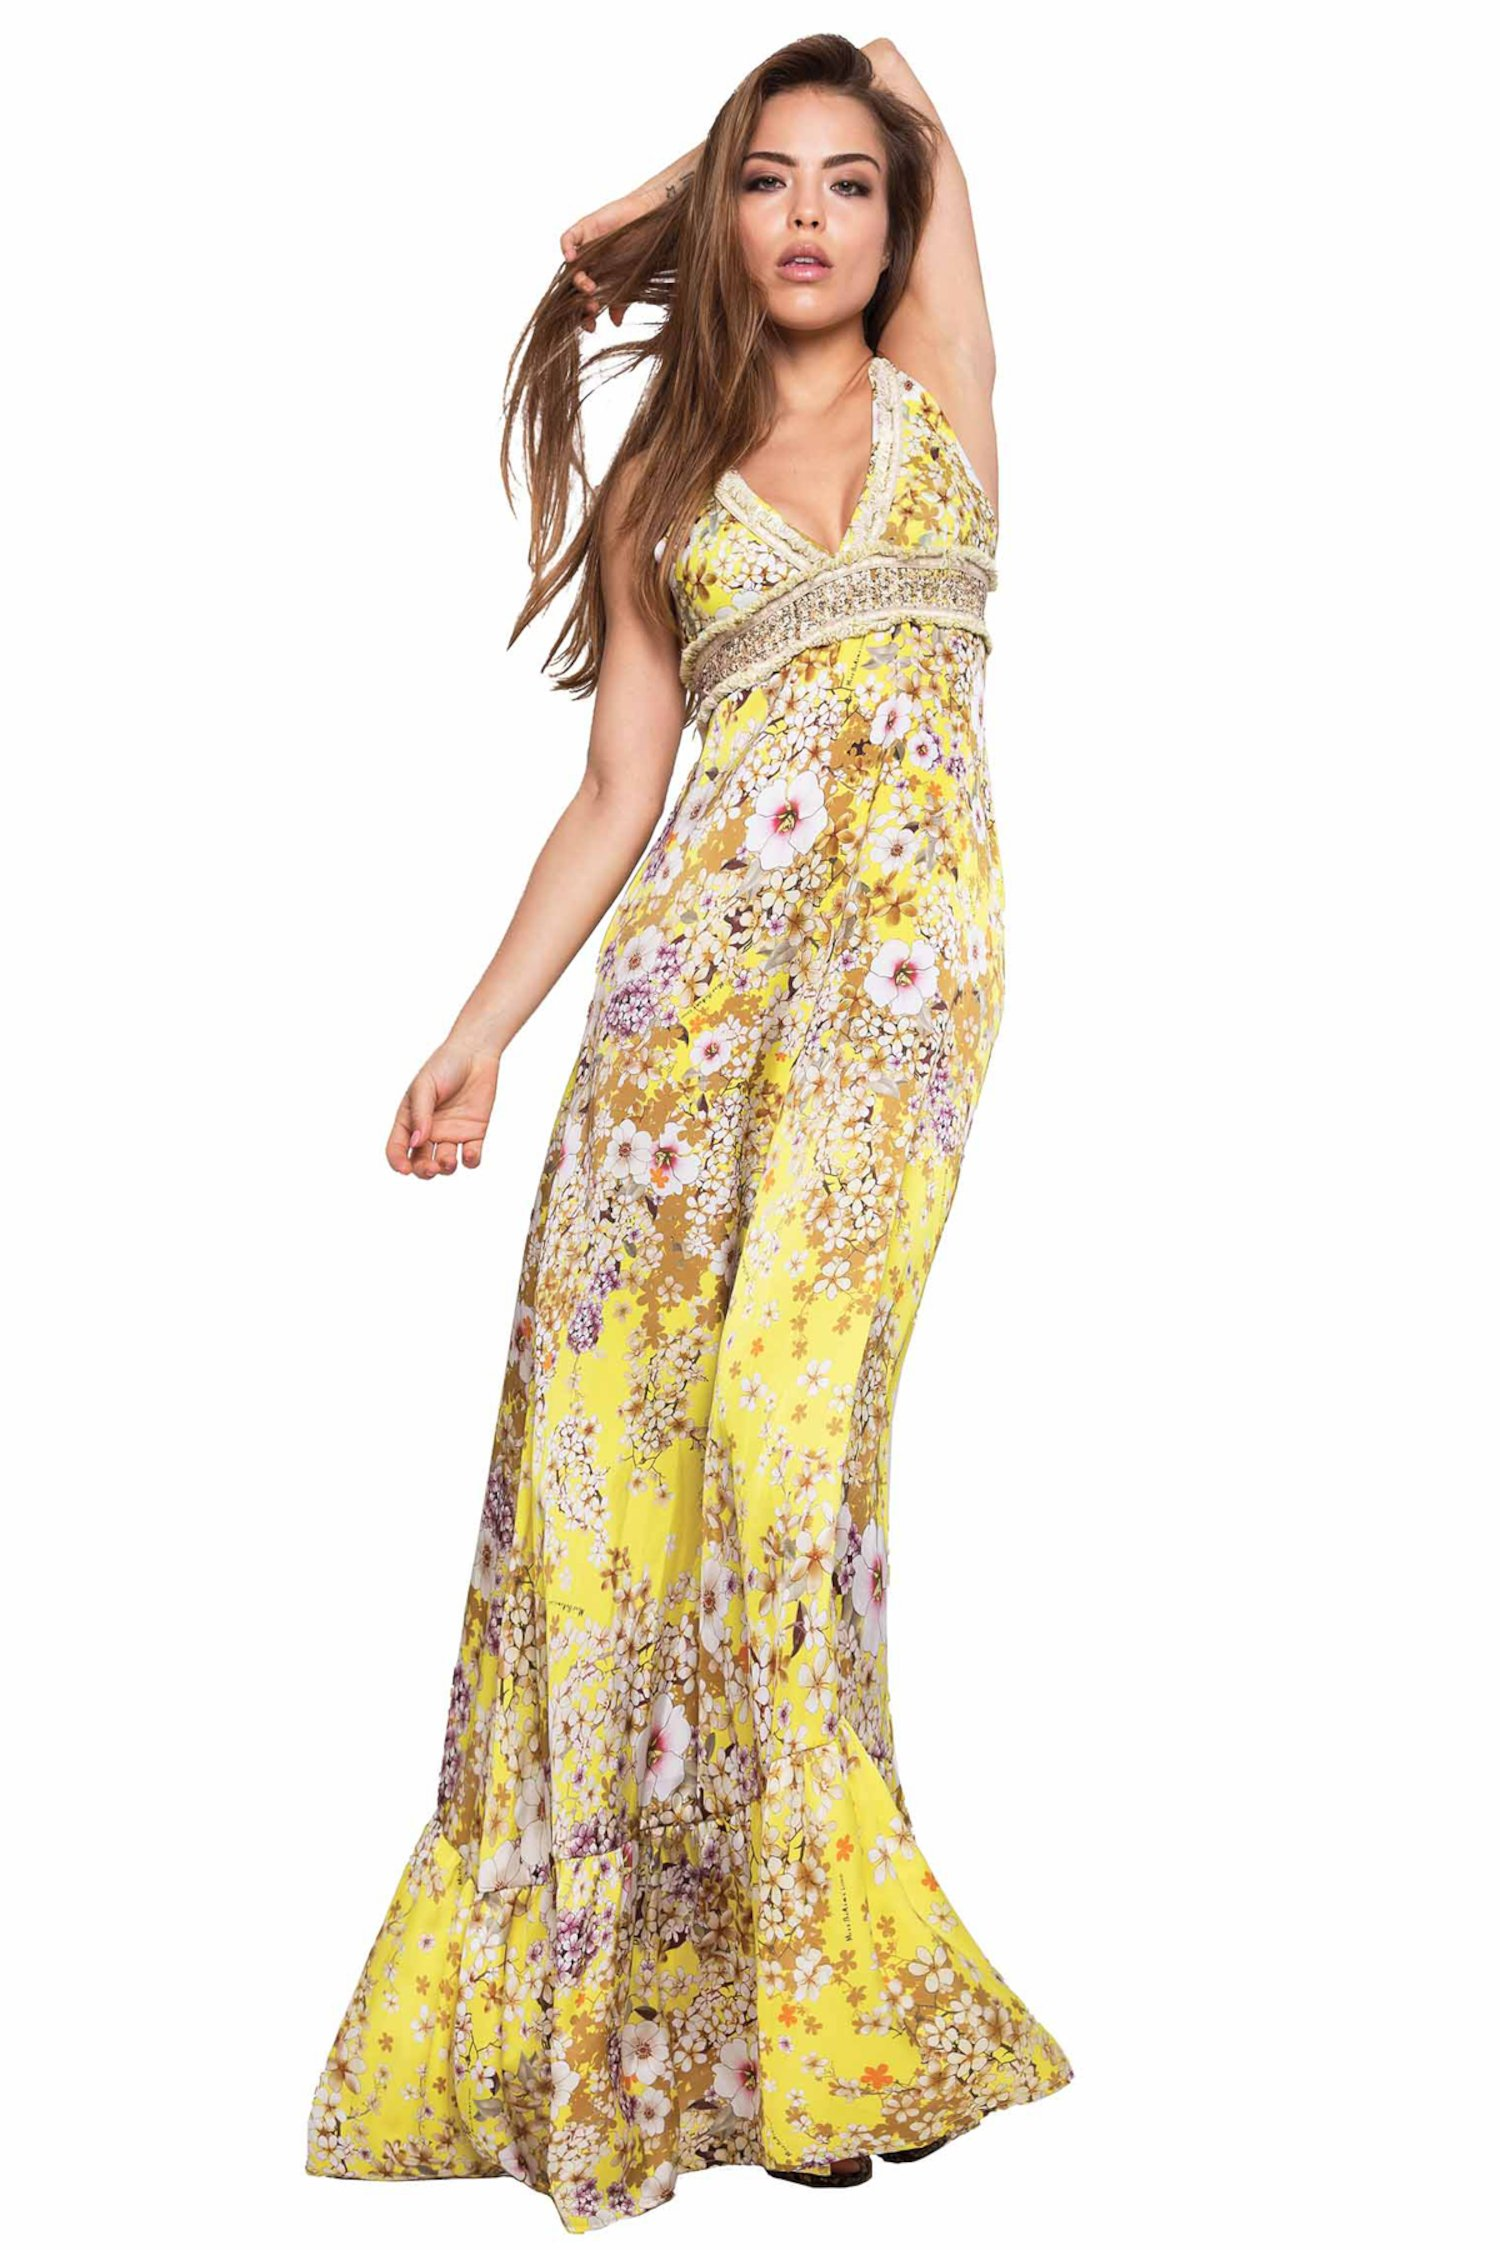 LONG DRESS CUPS WITH EMBROIDERY THREAD SPRING - Primavera Giallo